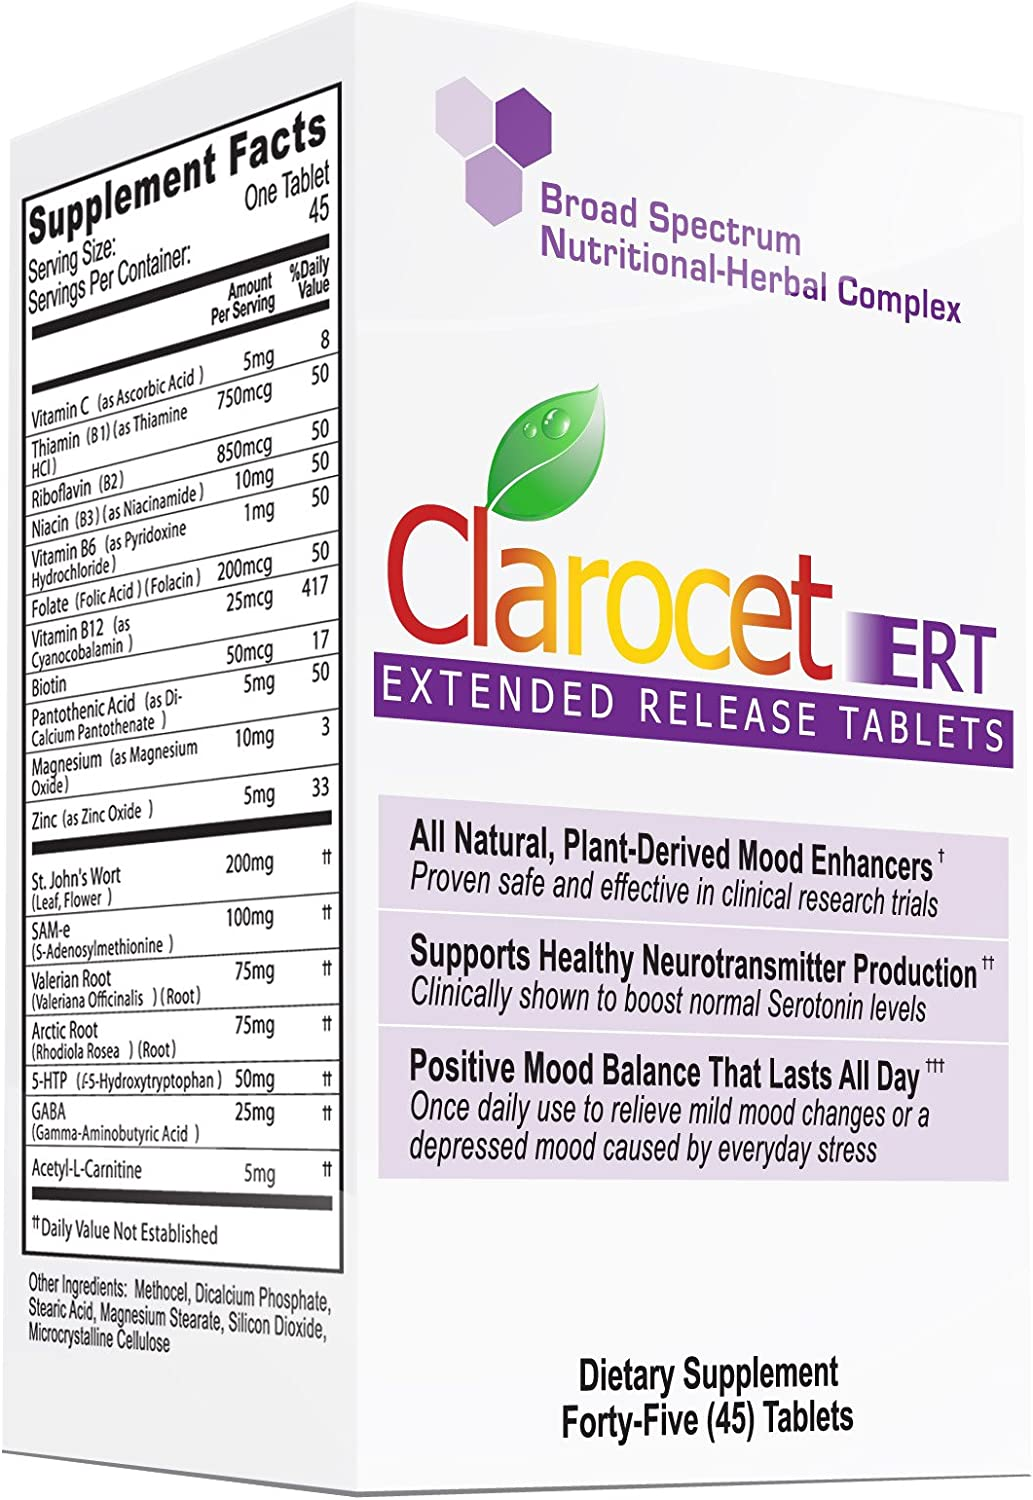 Clarocet ERT: Extended Release Tablets for mild to moderate mood changes, irritability and a depressed mood caused by everyday stress.